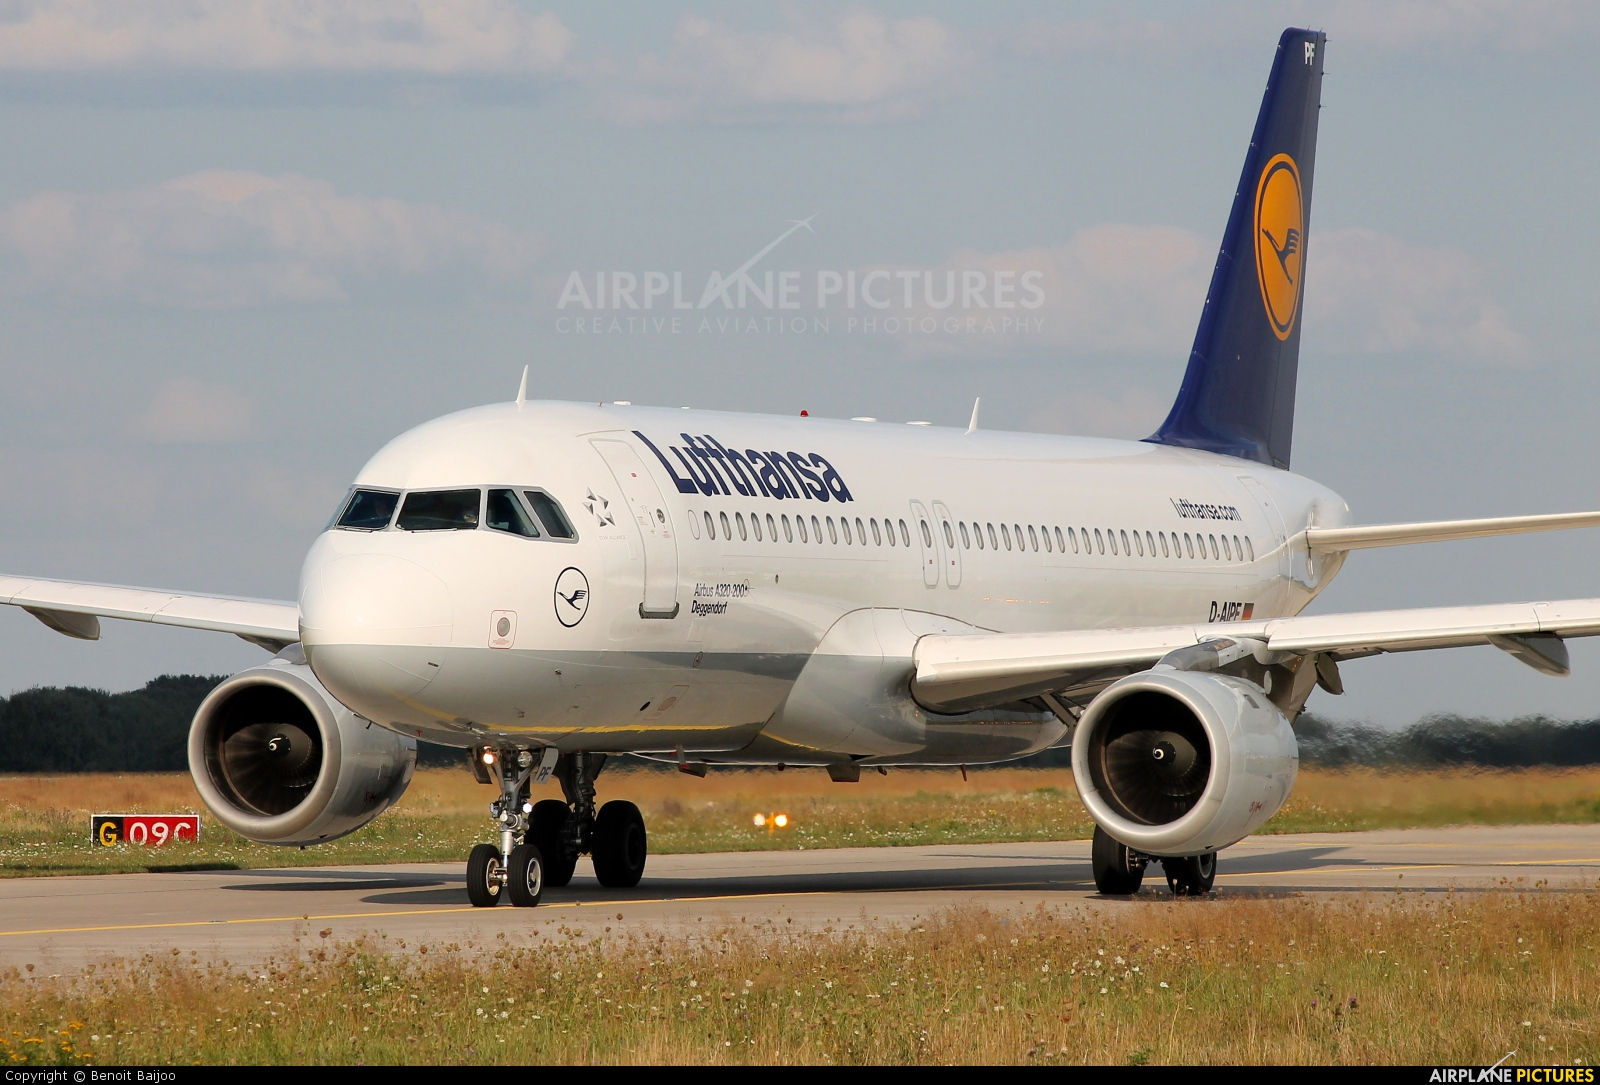 d aipf lufthansa airbus a320 at hannover langenhagen photo id 315570 airplane. Black Bedroom Furniture Sets. Home Design Ideas